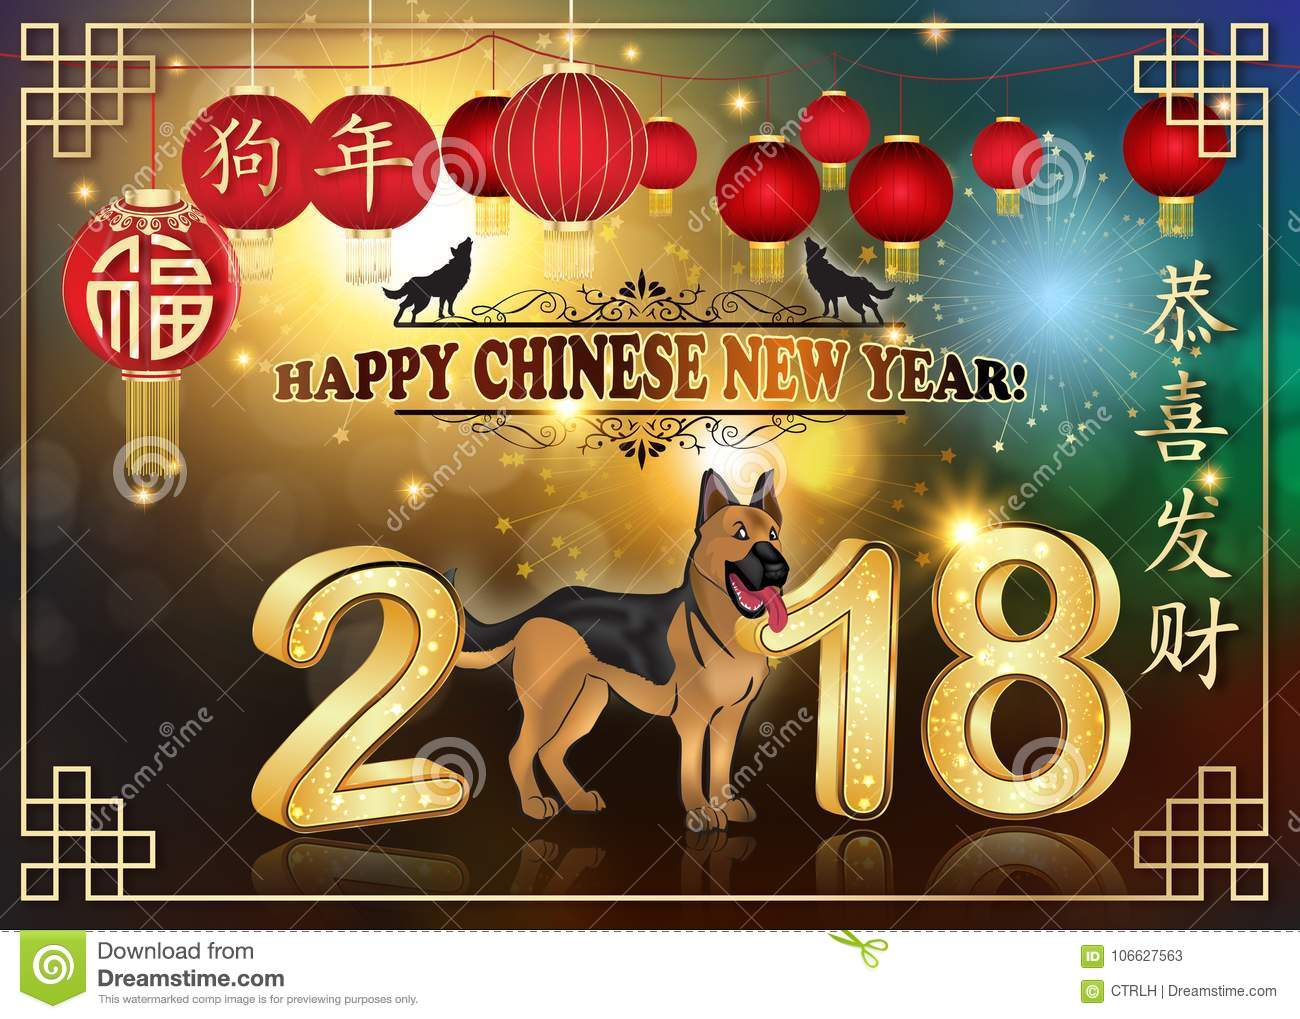 Happy Chinese New Year of the Dog 2018. Greeting card with fireworks on the background